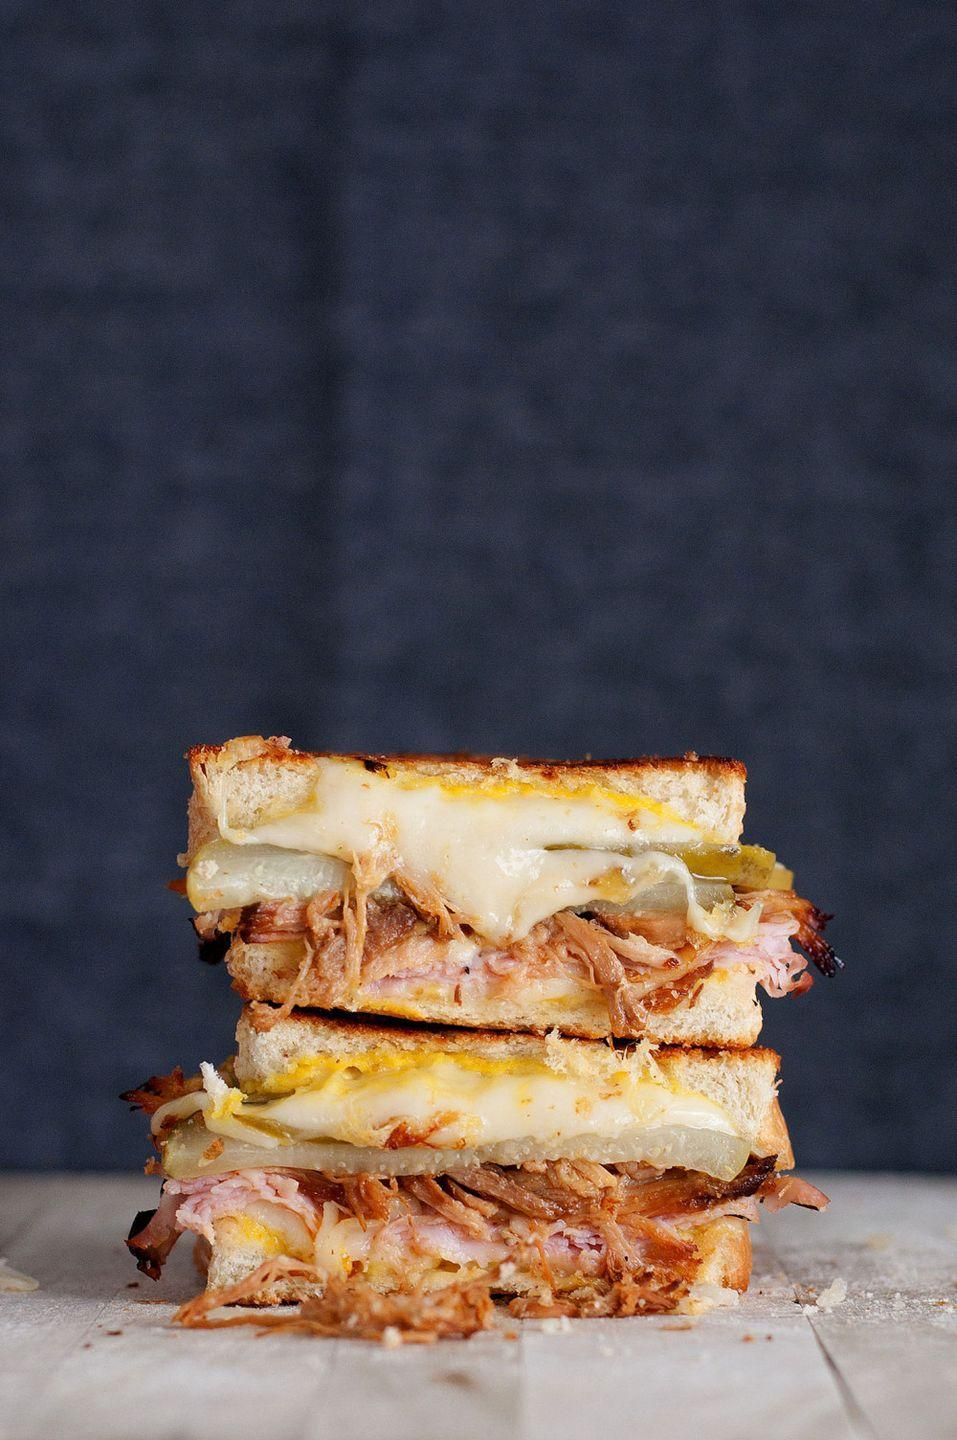 """<p>Yes, a Cuban sandwich counts in your all-grilled cheese diet. </p><p>Get the recipe from <a href=""""http://bsinthekitchen.com/the-cuban-grilled-cheese/#more-3859"""" rel=""""nofollow noopener"""" target=""""_blank"""" data-ylk=""""slk:BS' In The Kitchen"""" class=""""link rapid-noclick-resp"""">BS' In The Kitchen</a>.</p>"""